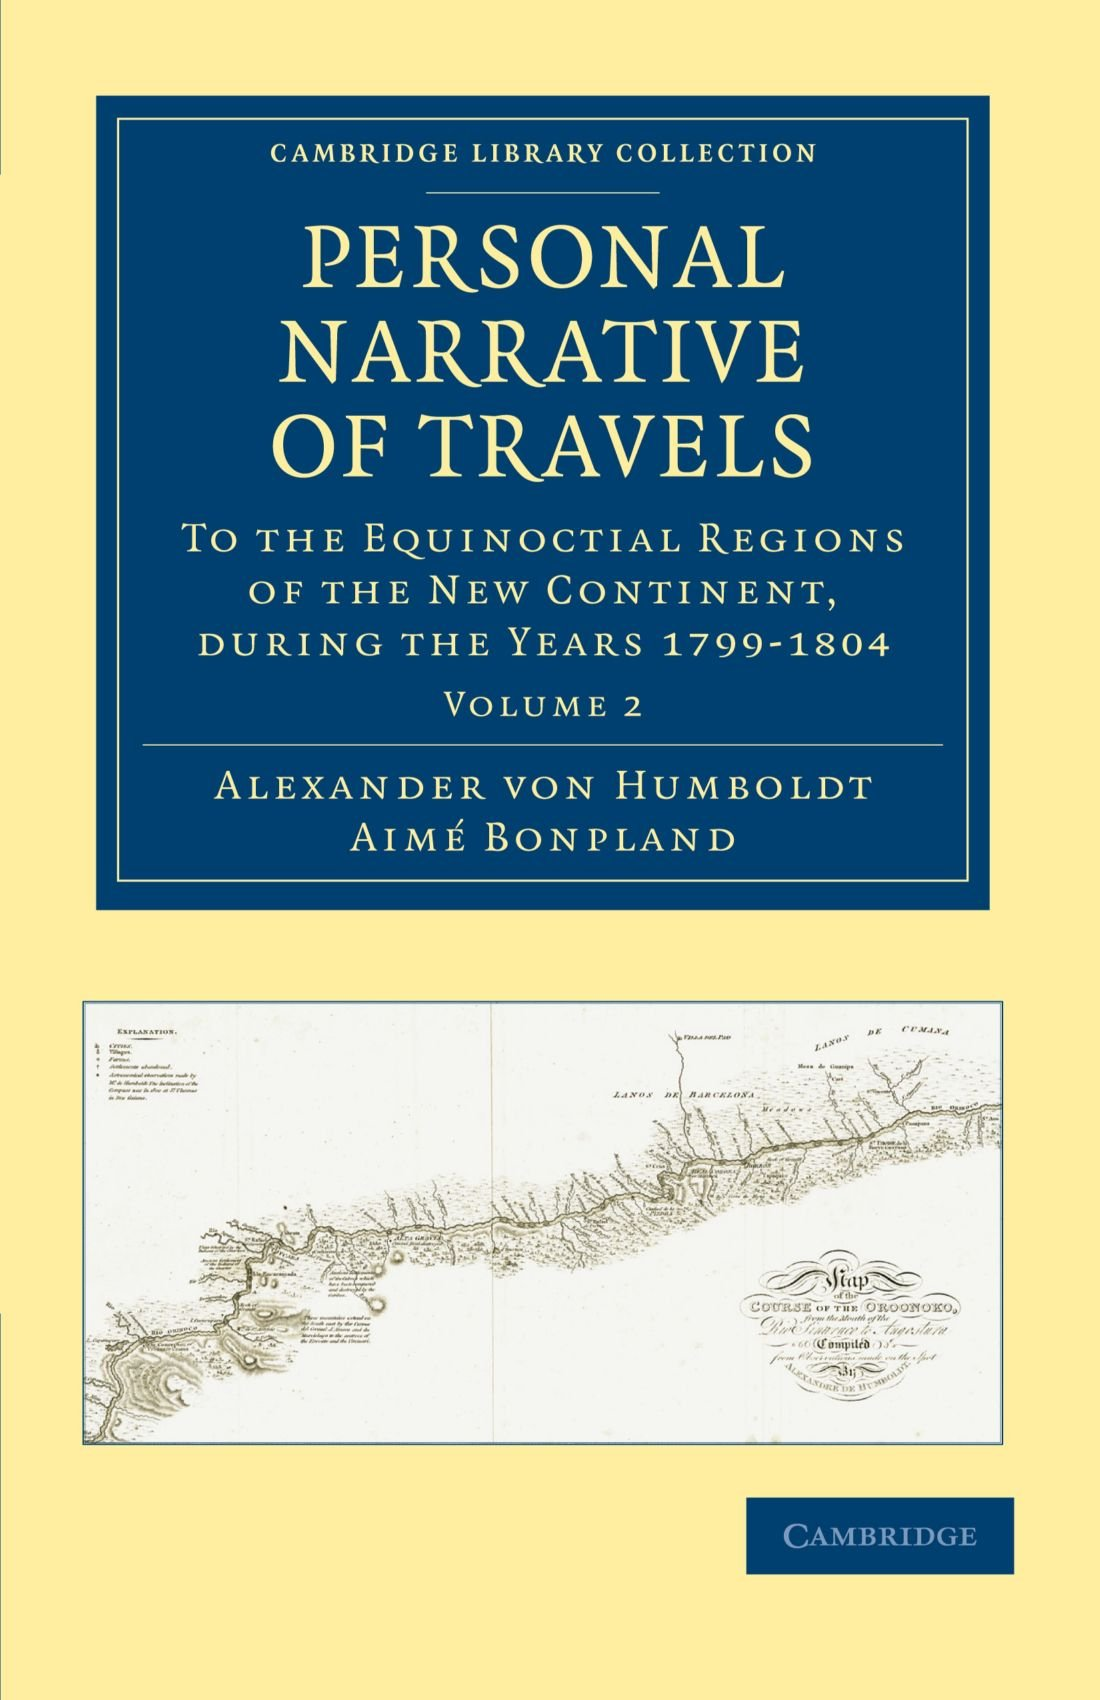 Download Personal Narrative of Travels to the Equinoctial Regions of the New Continent: During the Years 1799-1804 (Cambridge Library Collection - Latin American Studies) (Volume 2) PDF